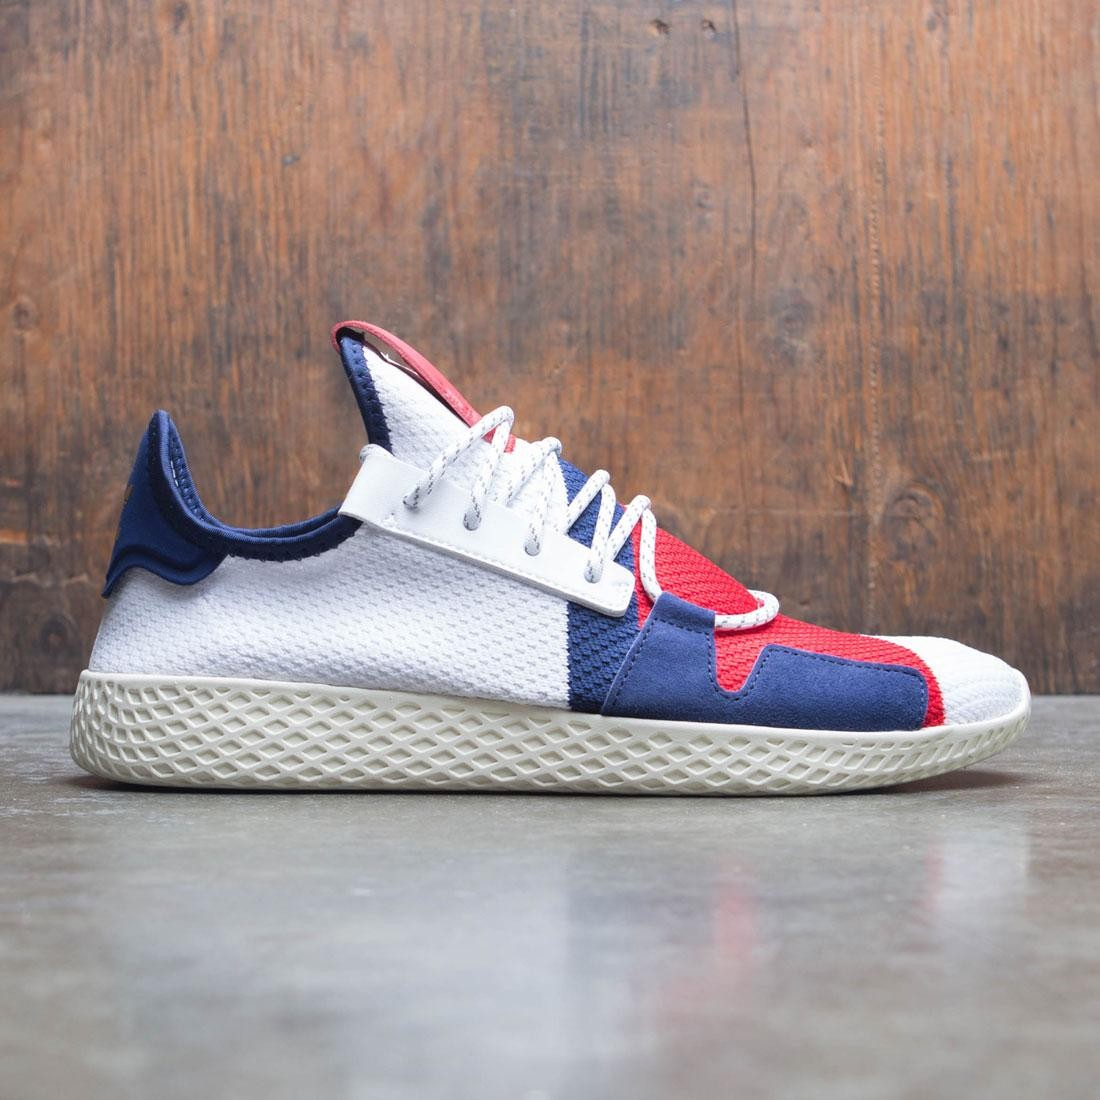 c26cfde39 Adidas x Pharrell Williams Men Tennis HU BBC white scarlet dark blue